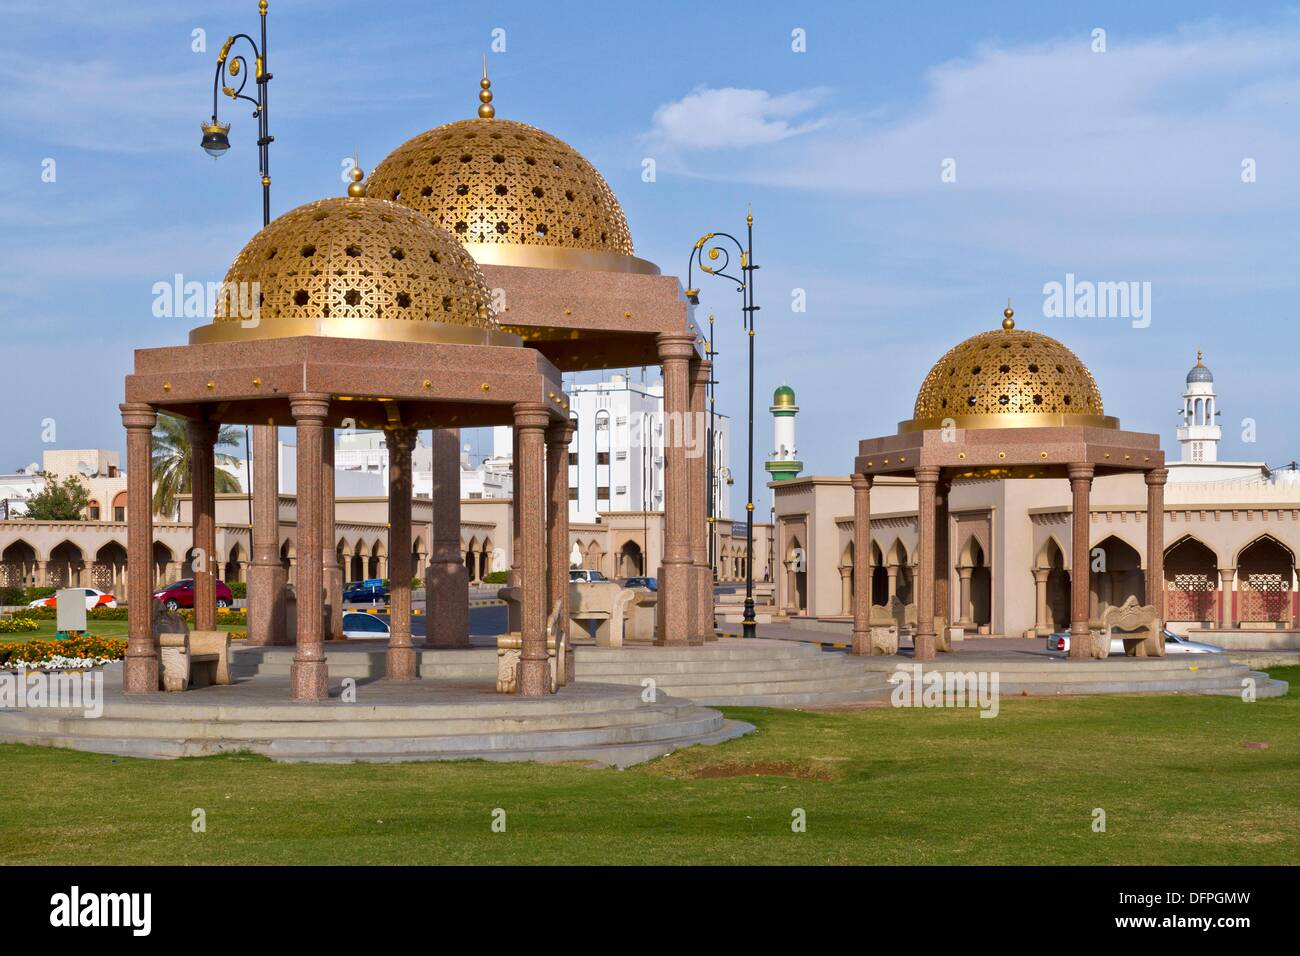 Golden domed cupolas on the harbourfront of Muscat, Oman. - Stock Image